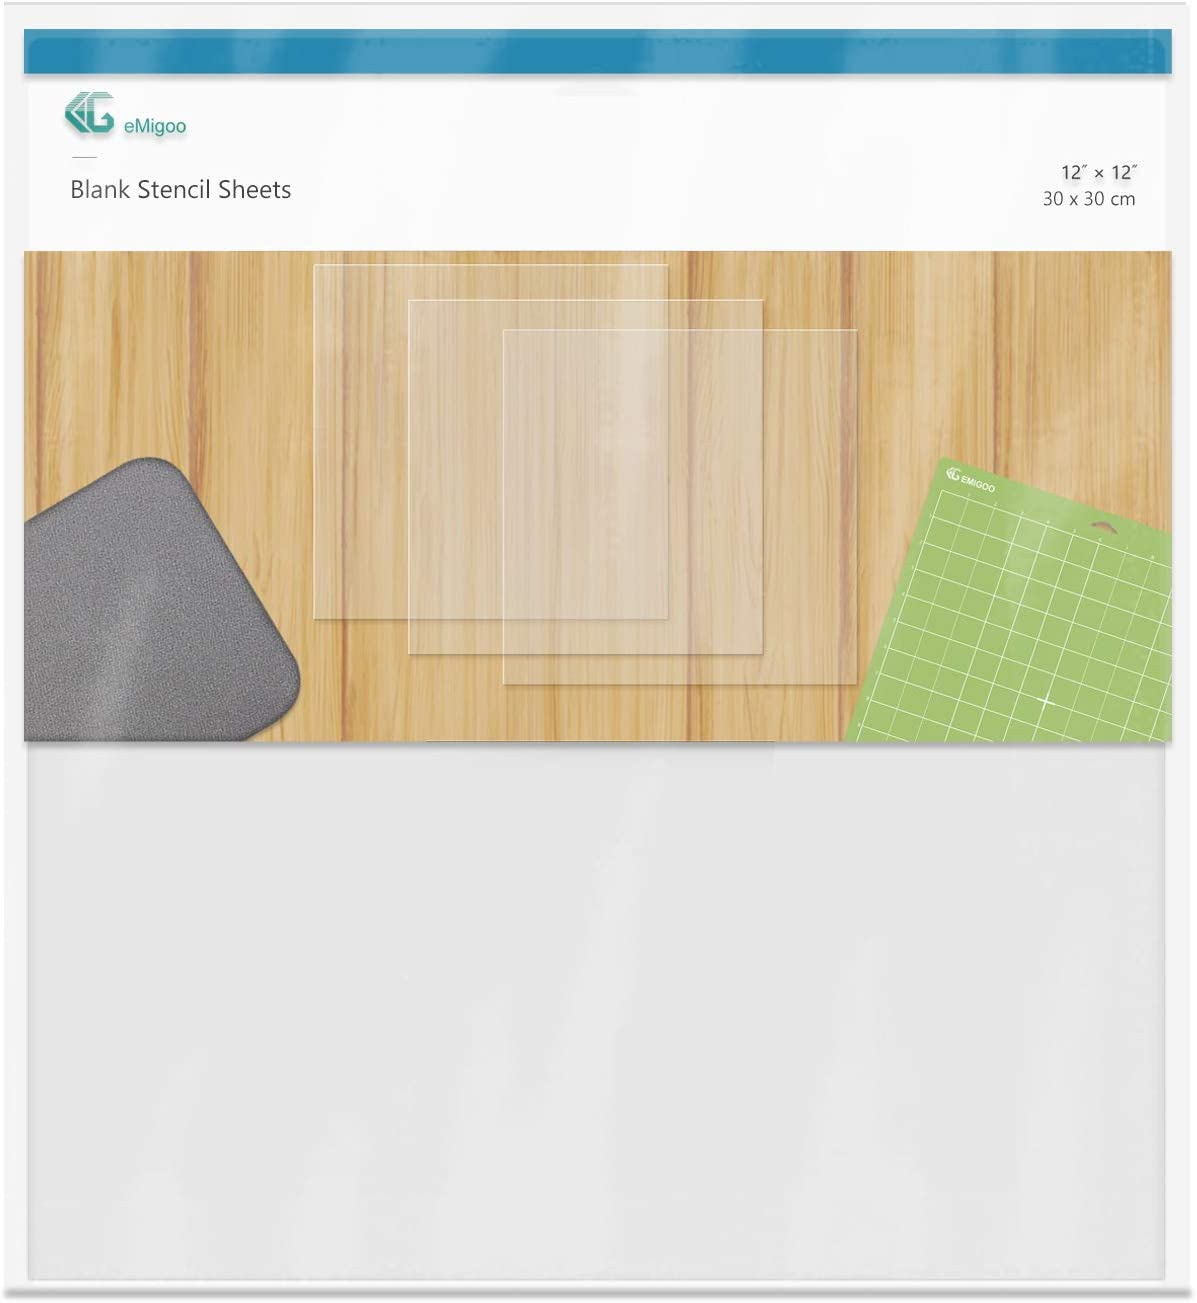 12 Pieces 5 mil Blank Stencil Material Mylar Template Sheets for Stencils, 12 x 12 inches(5 mil)